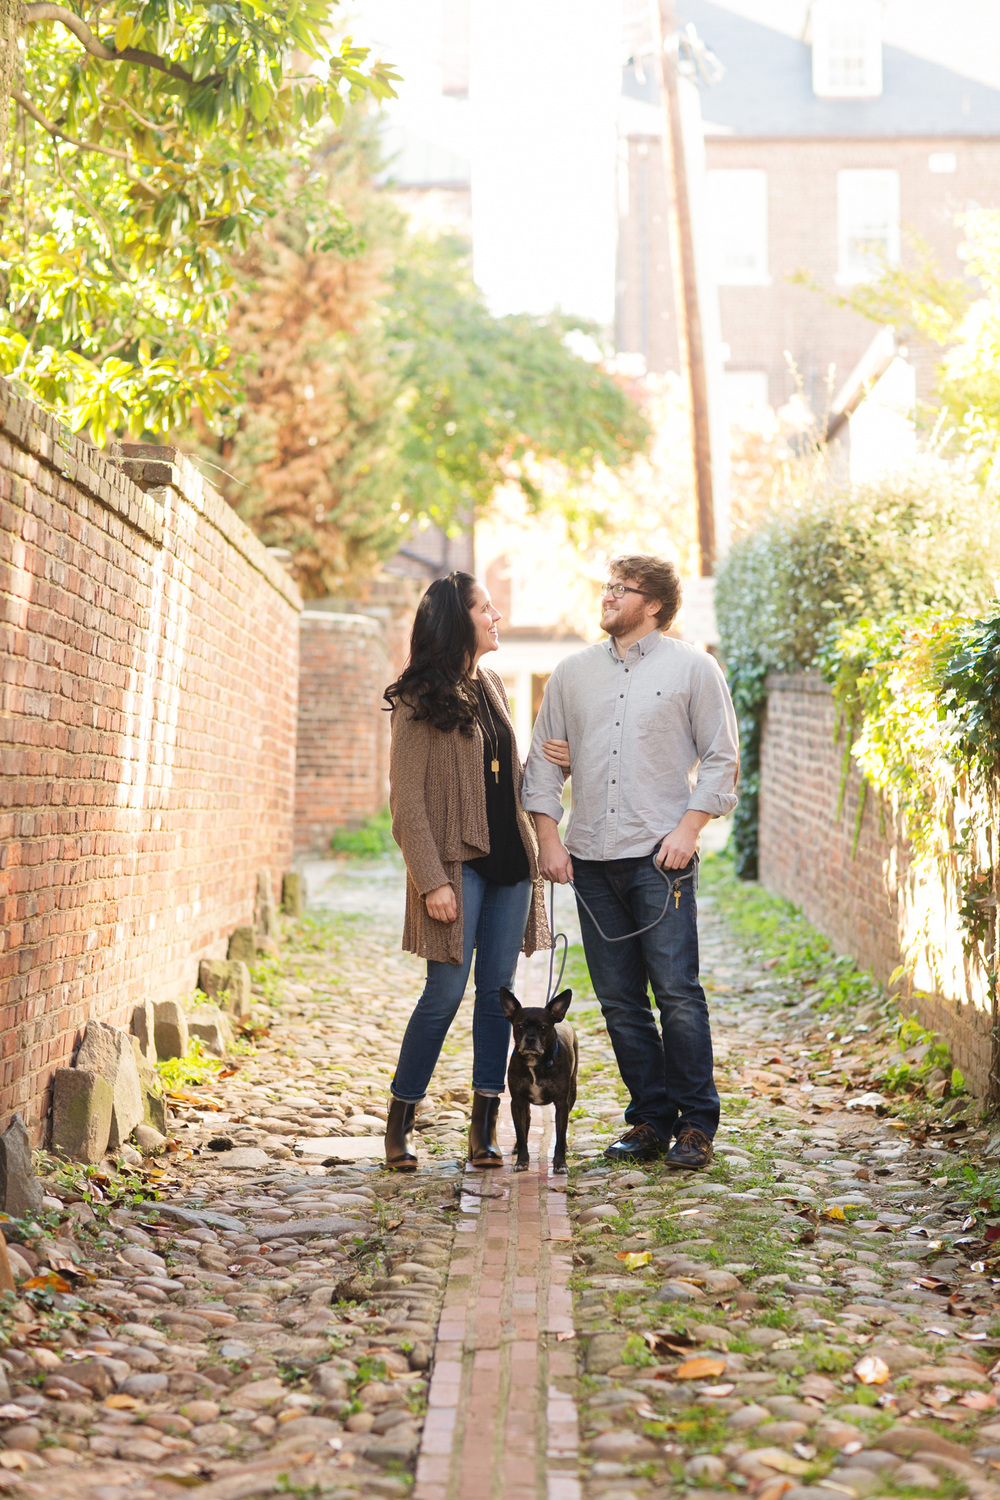 300-old-town-alexandria-northern-virginia-engagement-photography.jpg